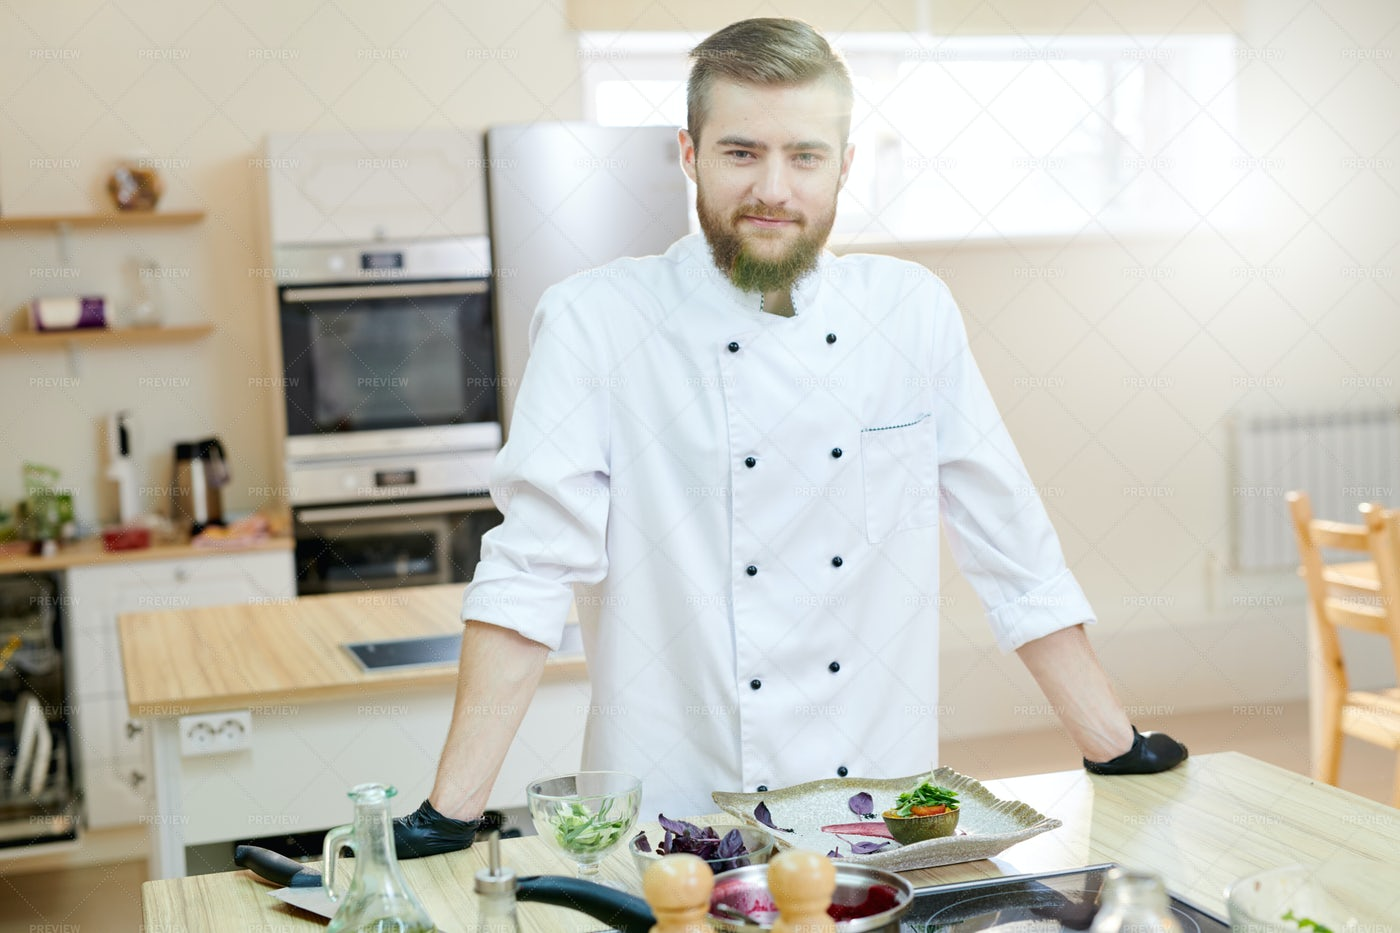 Handsome Chef Posing In Kitchen: Stock Photos